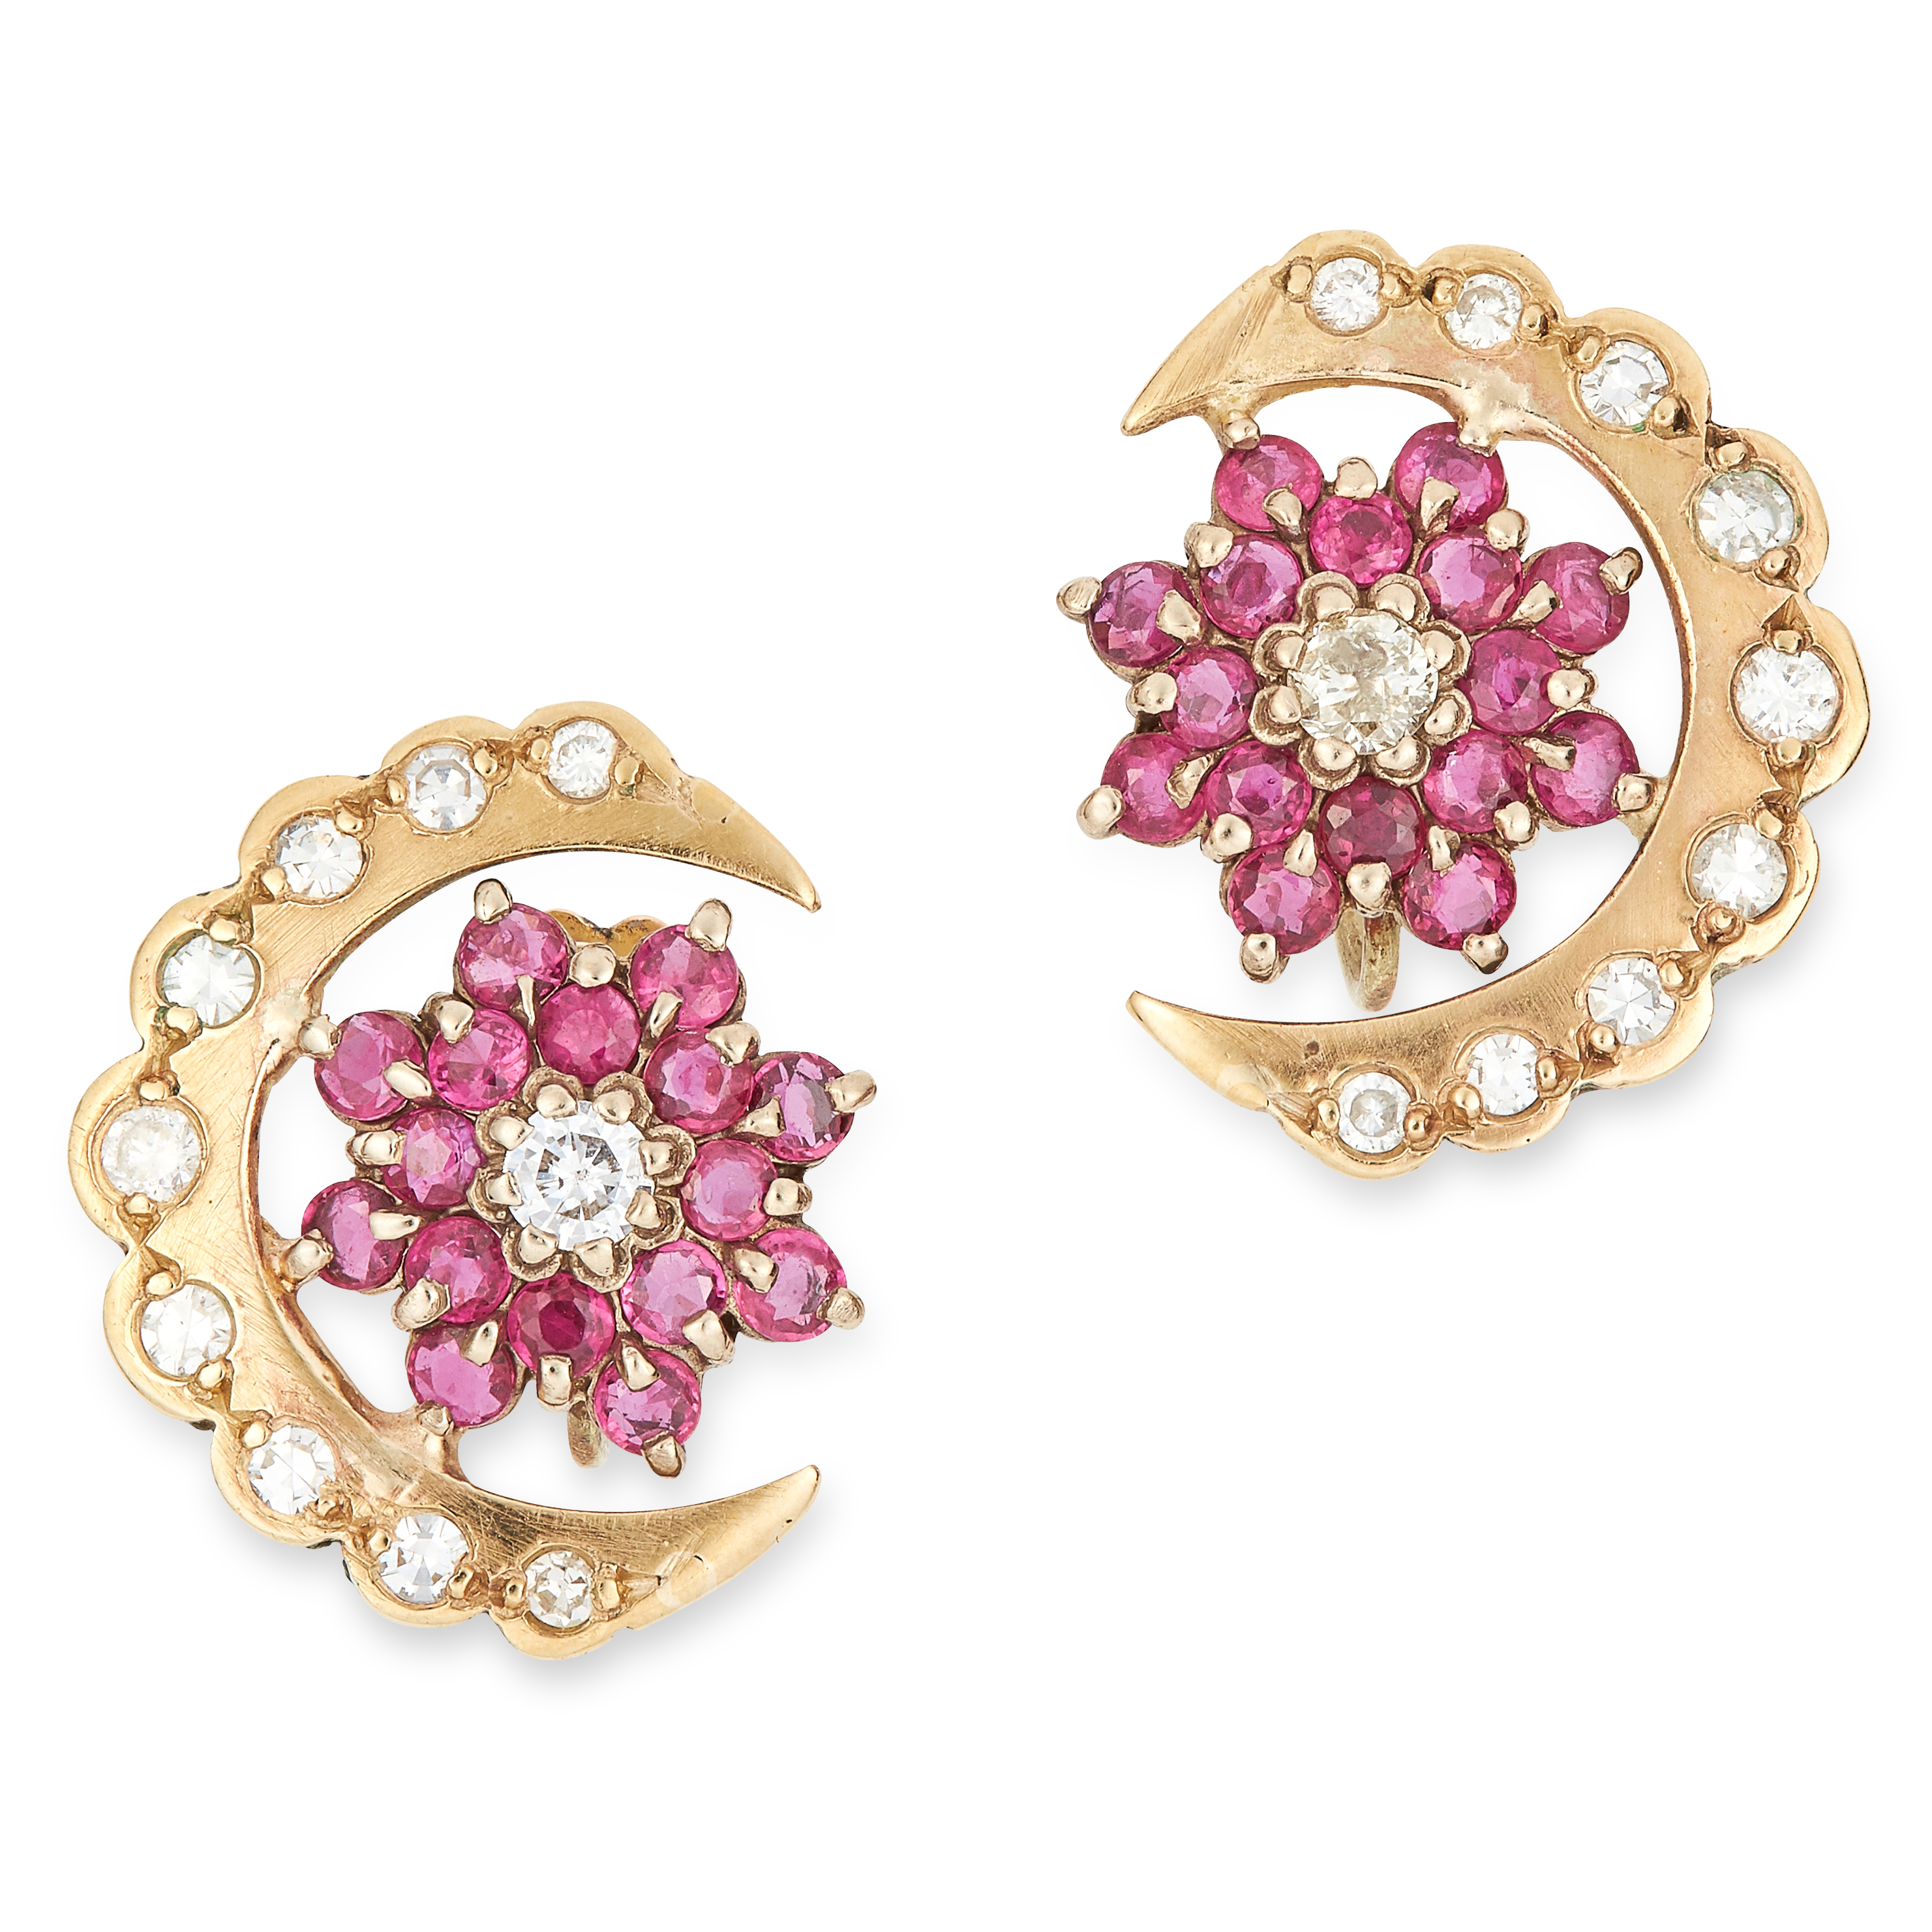 Los 52 - RUBY AND DIAMOND CRESCENT MOON EARRINGS set with round cut rubies and diamonds, 1.9cm, 5.4g.